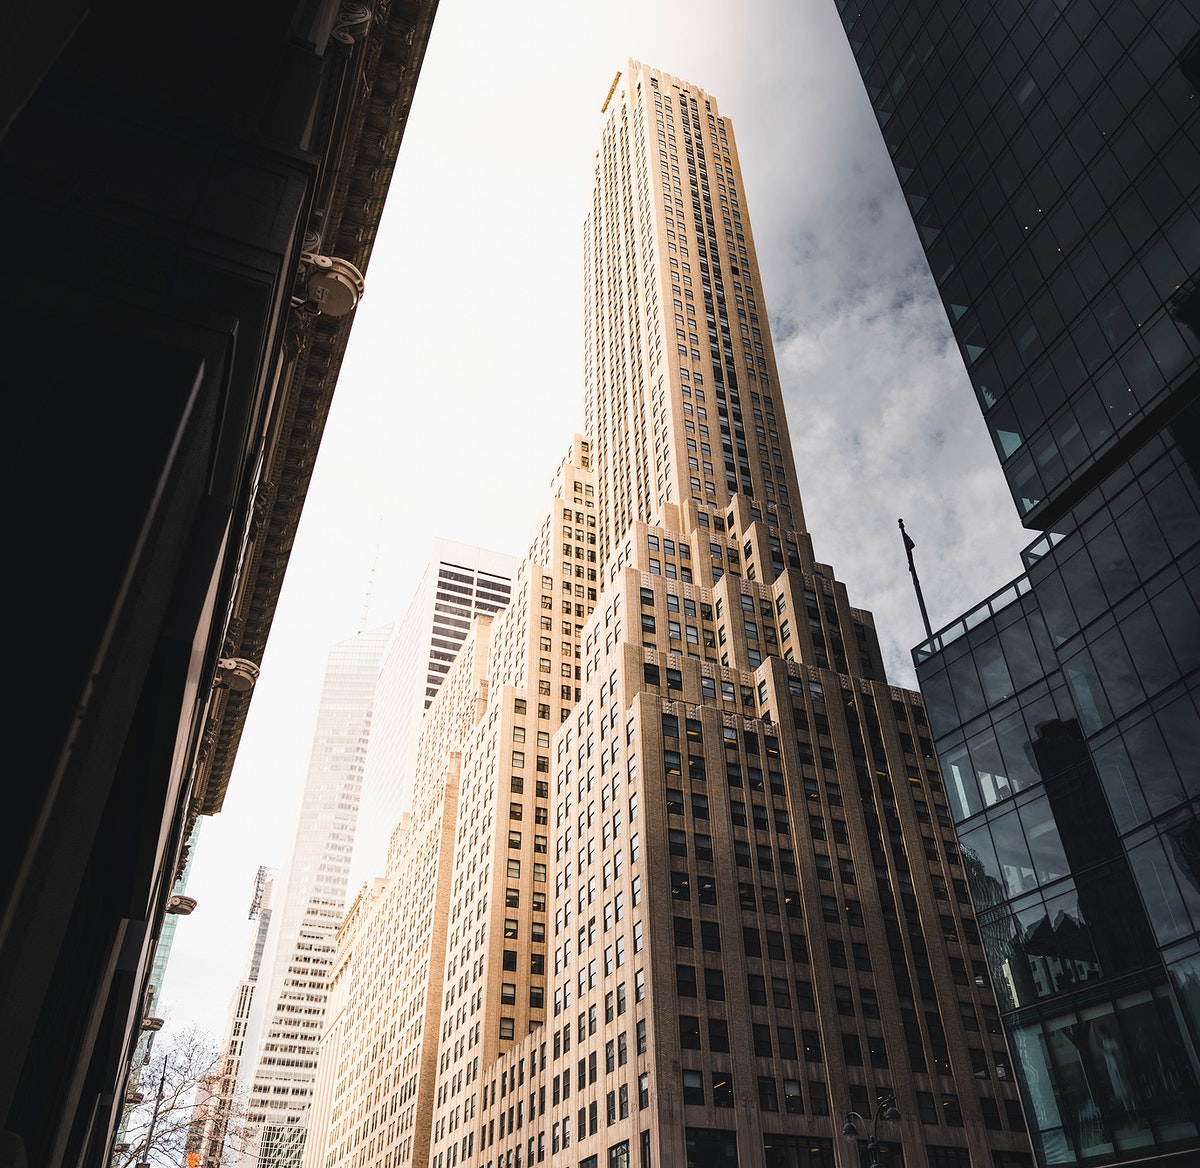 Skyscrapers in New York City, United States